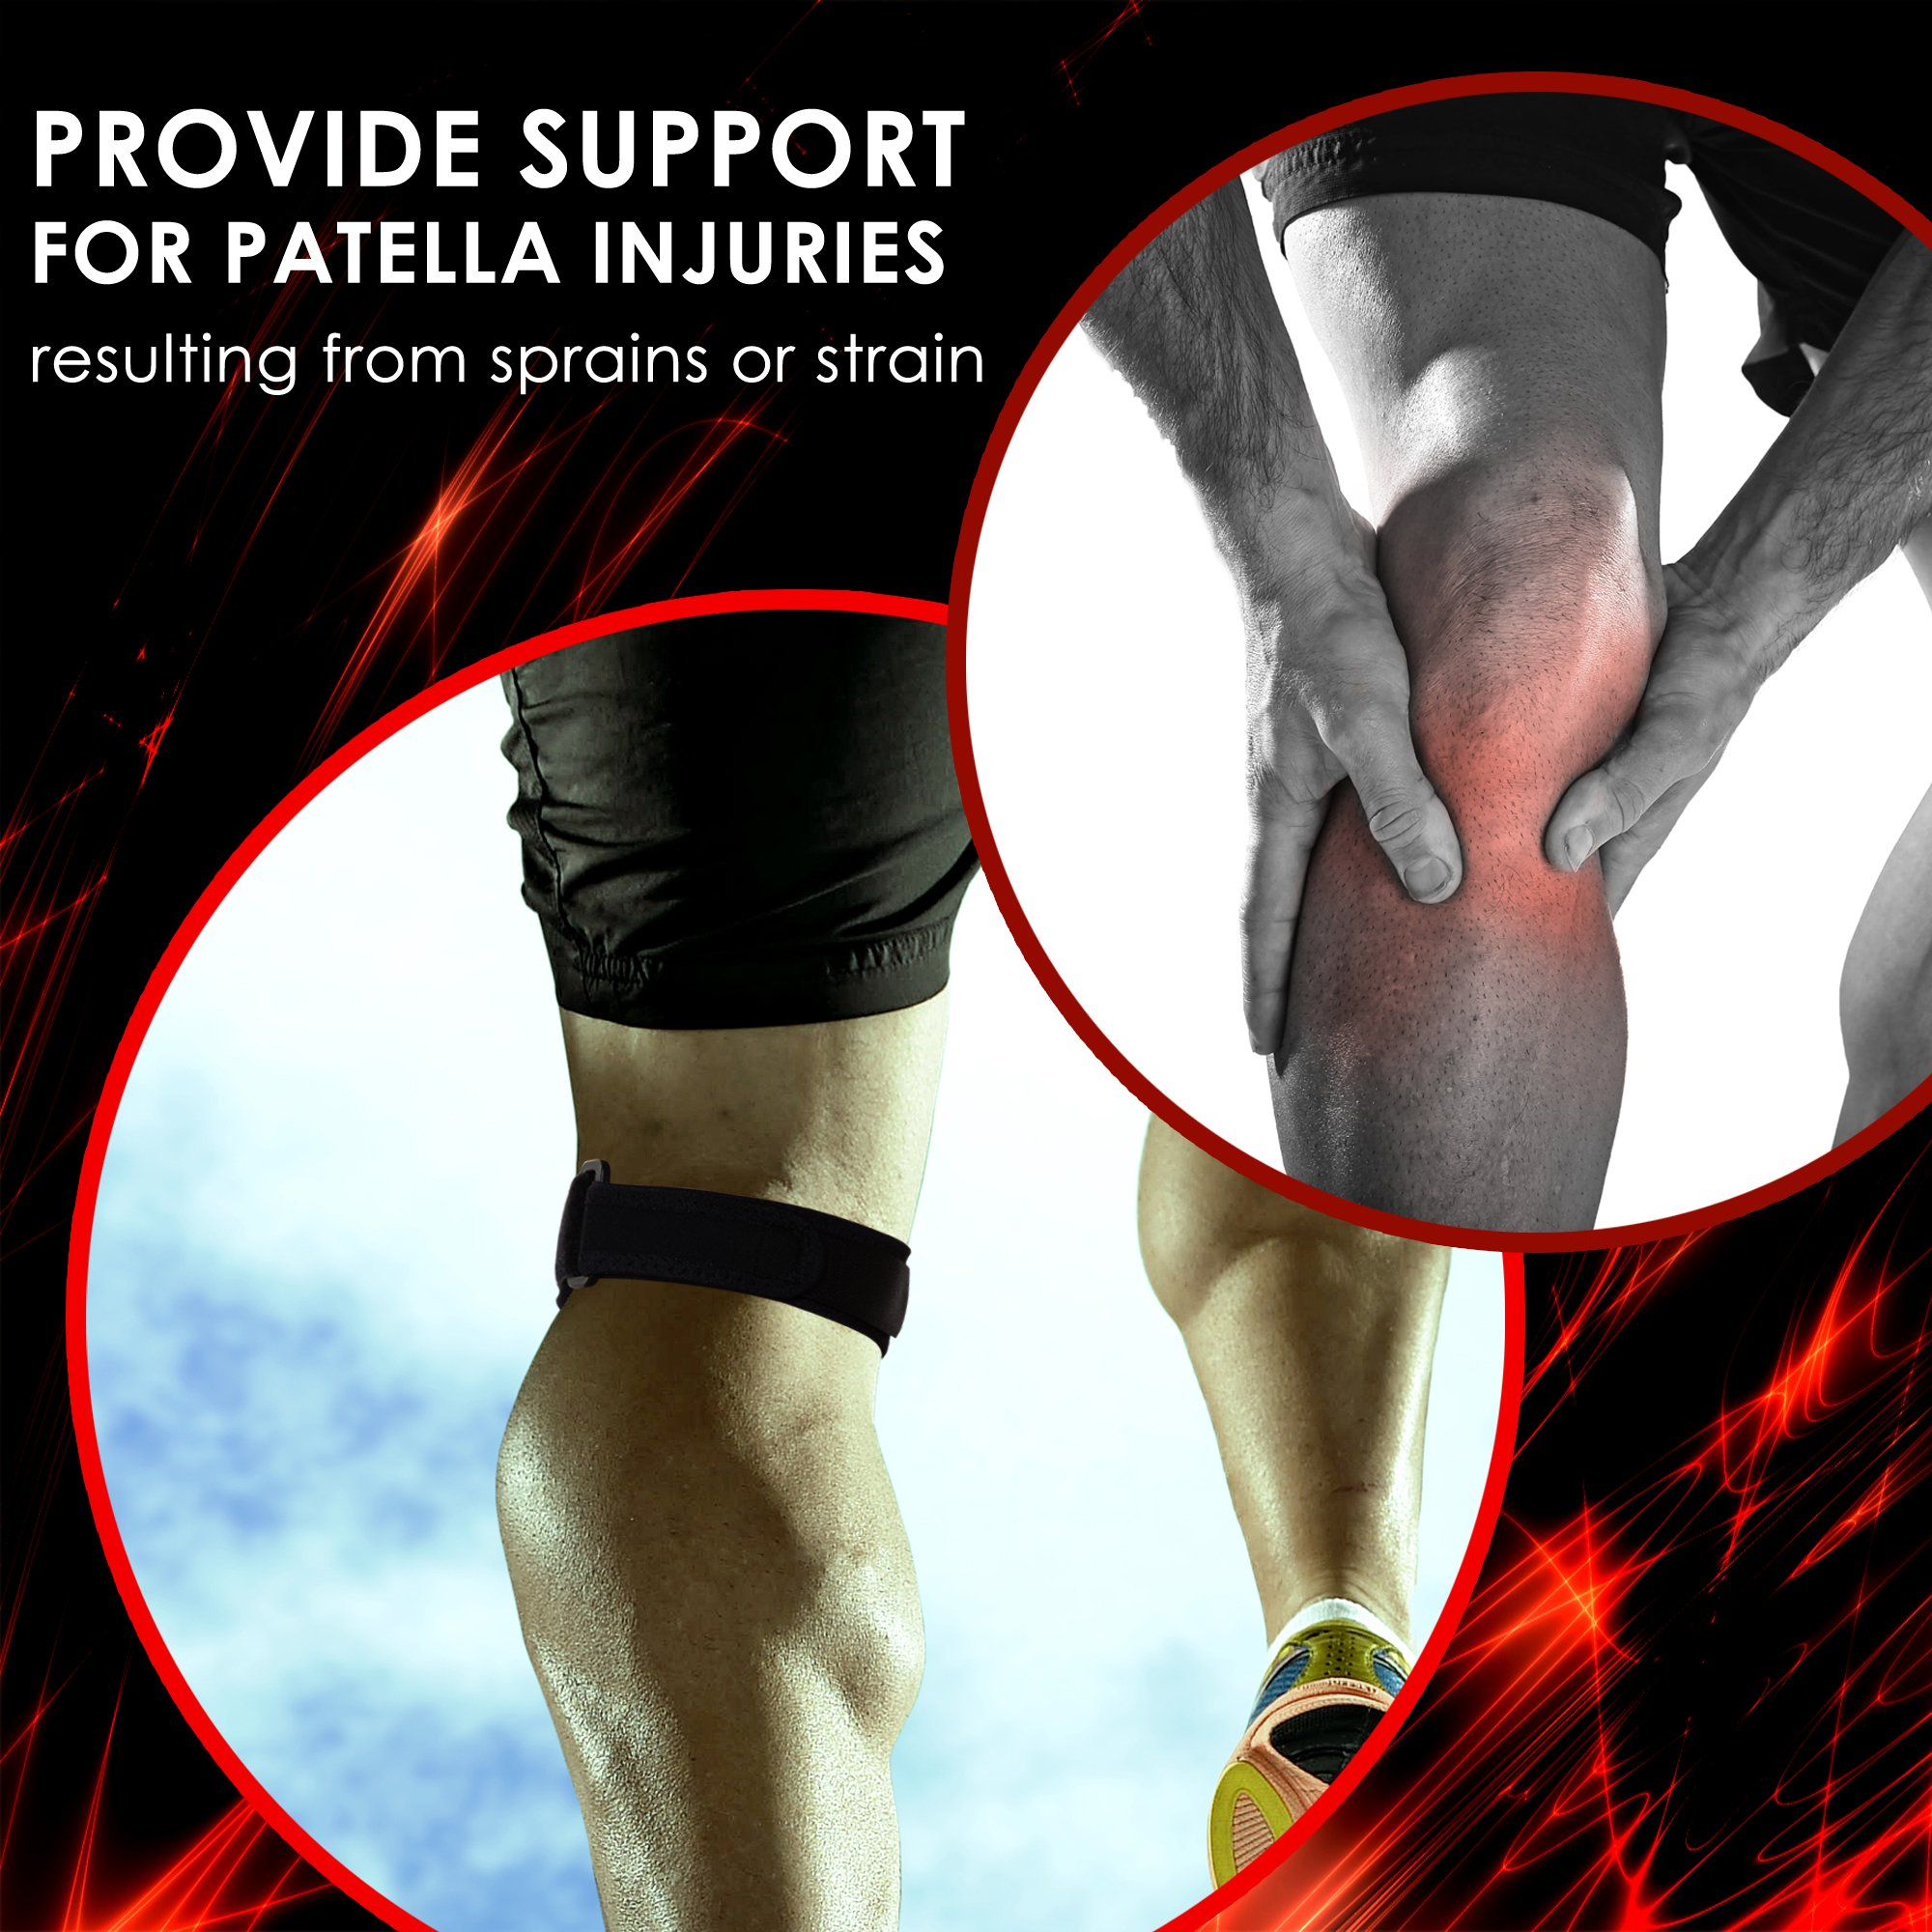 ORBE Patella Stabilizer Knee Strap Set: 2-Pack Athletic Knee Support Brace Kit  Adjustable Neoprene Pain Relief Patella Braces for Men & Women  Comfy Volleyball, Gym, Running & Tendonitis Knee Braces